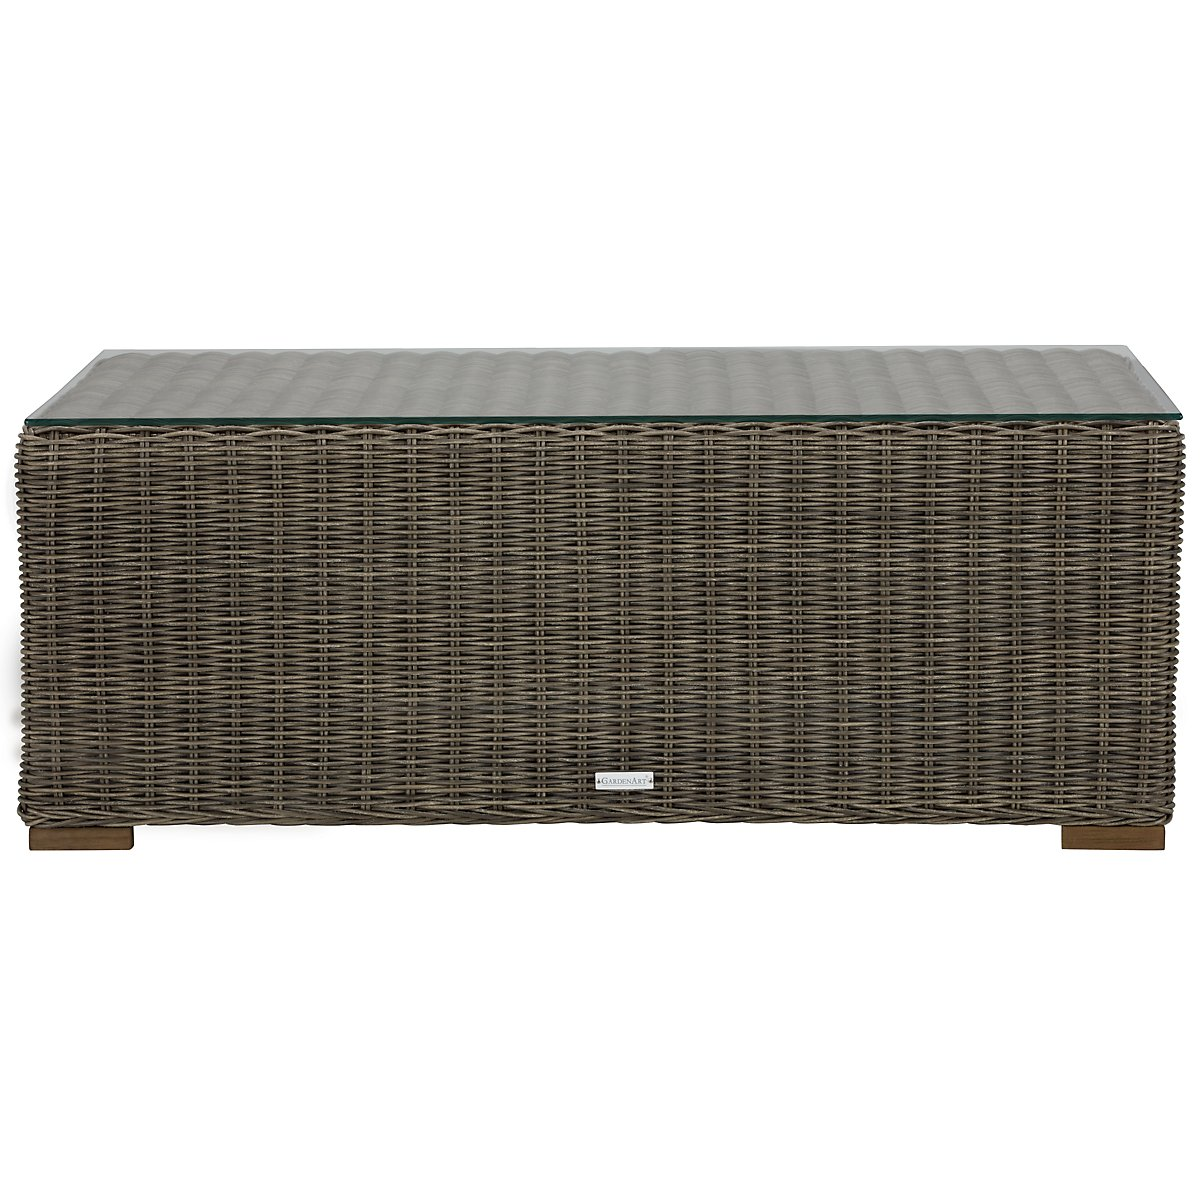 Canyon3 Gray Glass Coffee Table